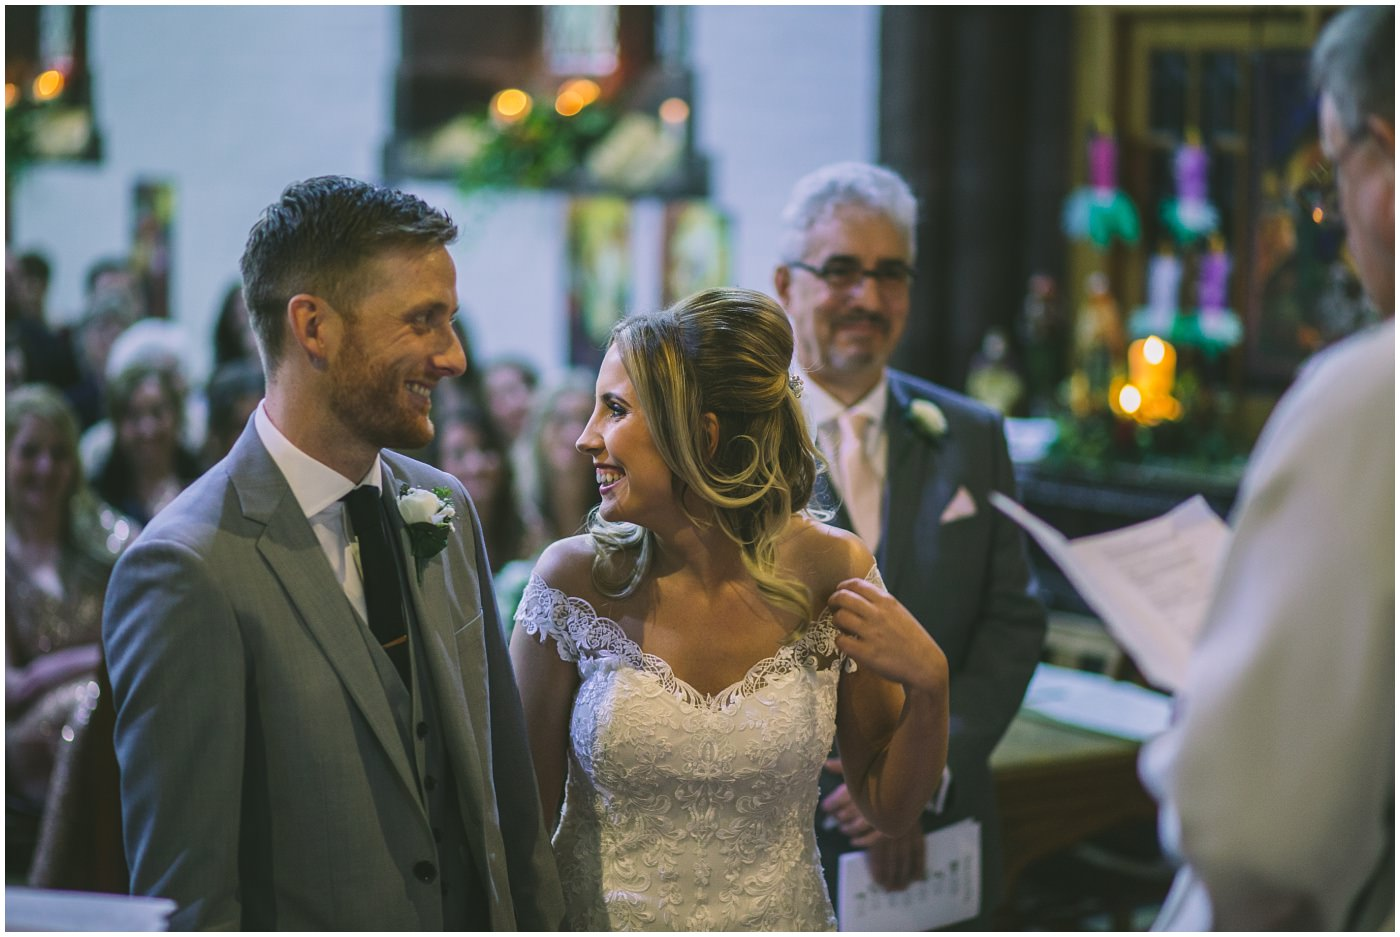 bride and groom share a smile during the service